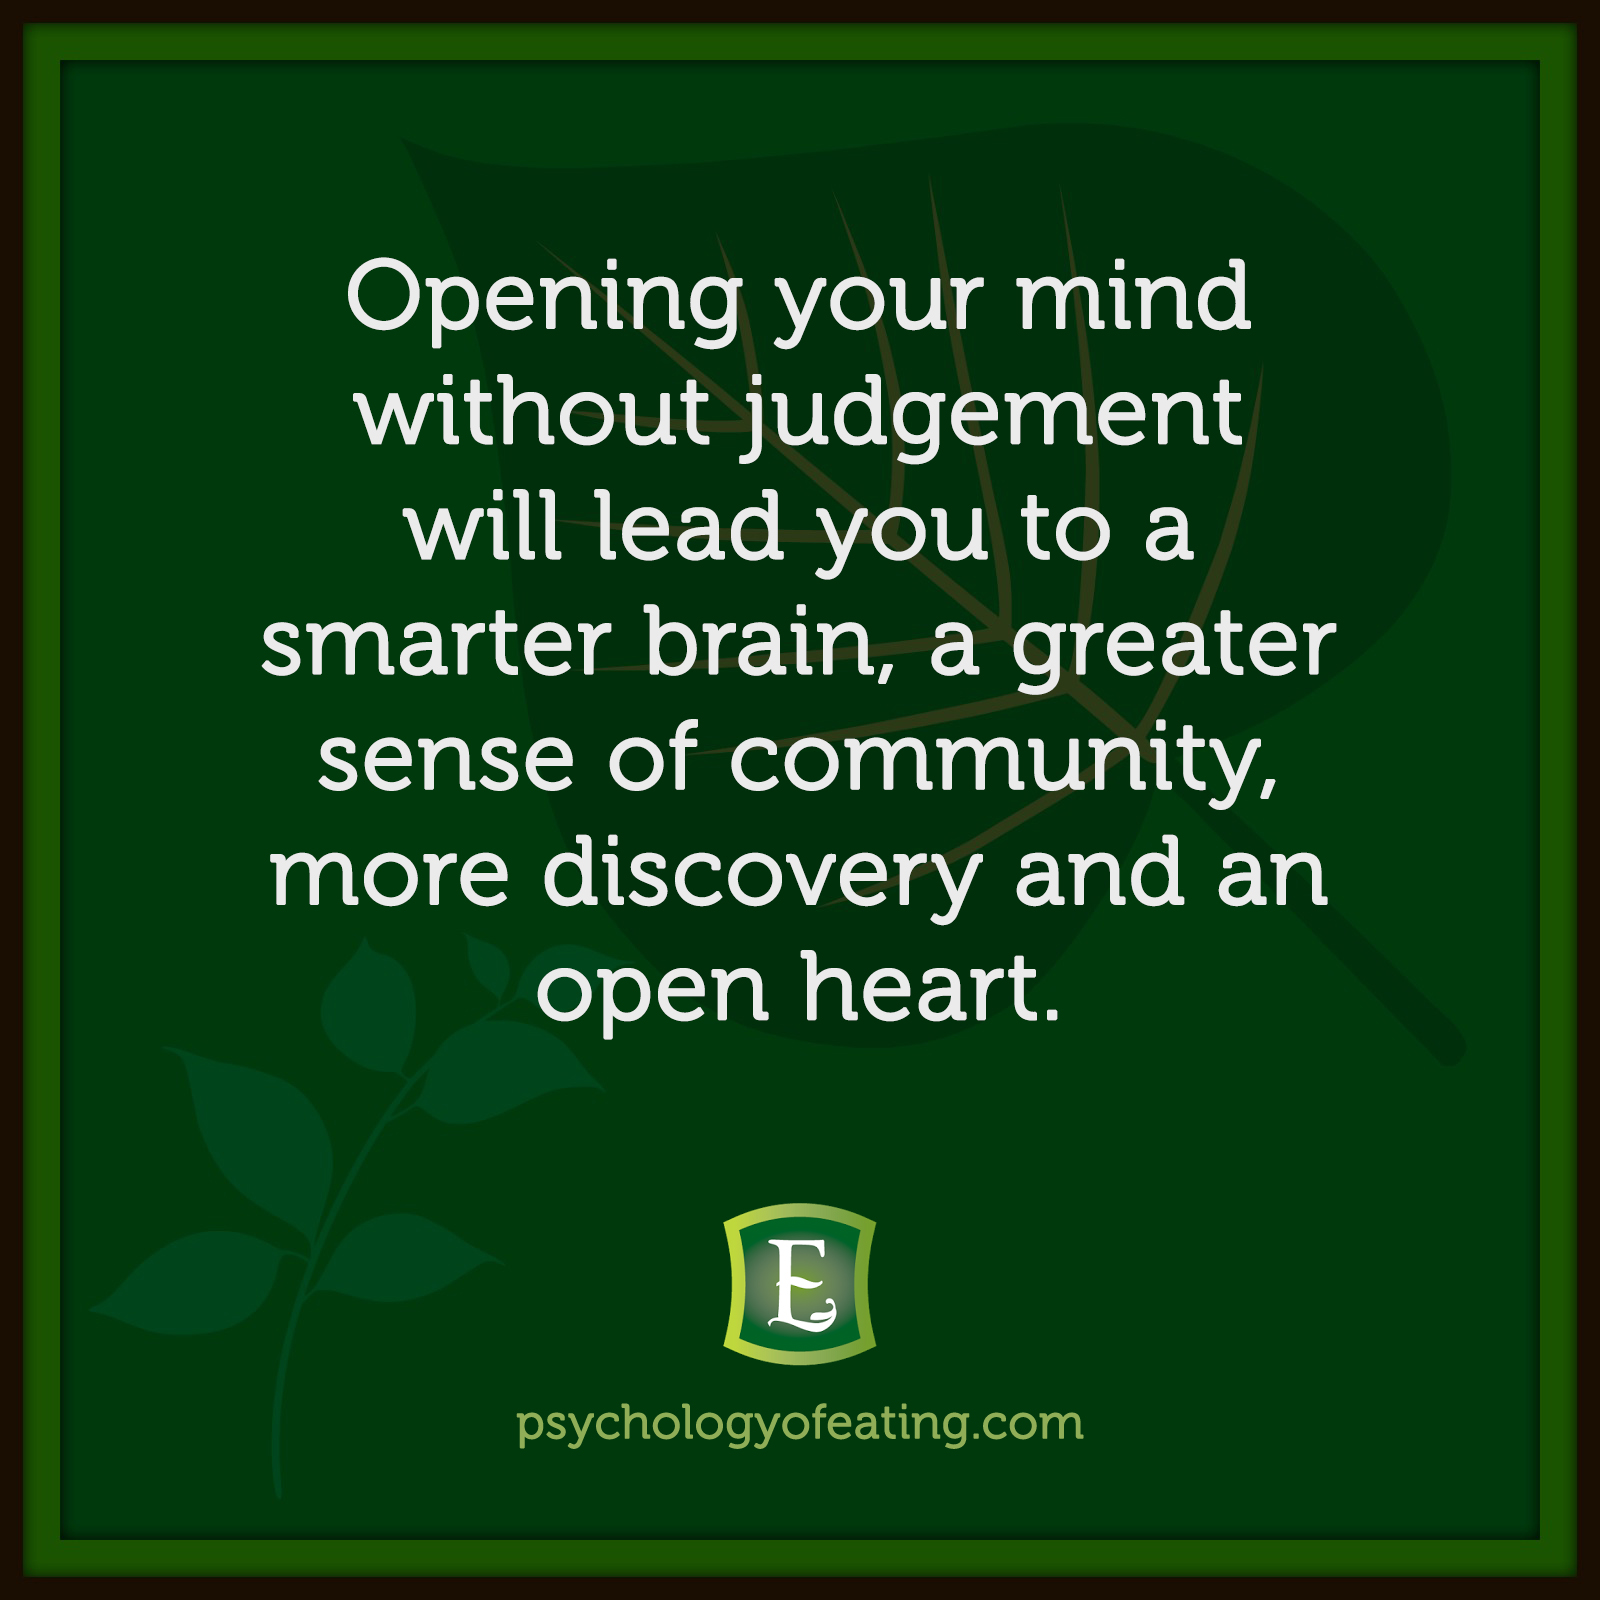 Opening your mind without judgement will lead you to a smarter brain, a greater sense of community, more discovery and an open heart.  #health #nutrition #eatingpsychology #IPE